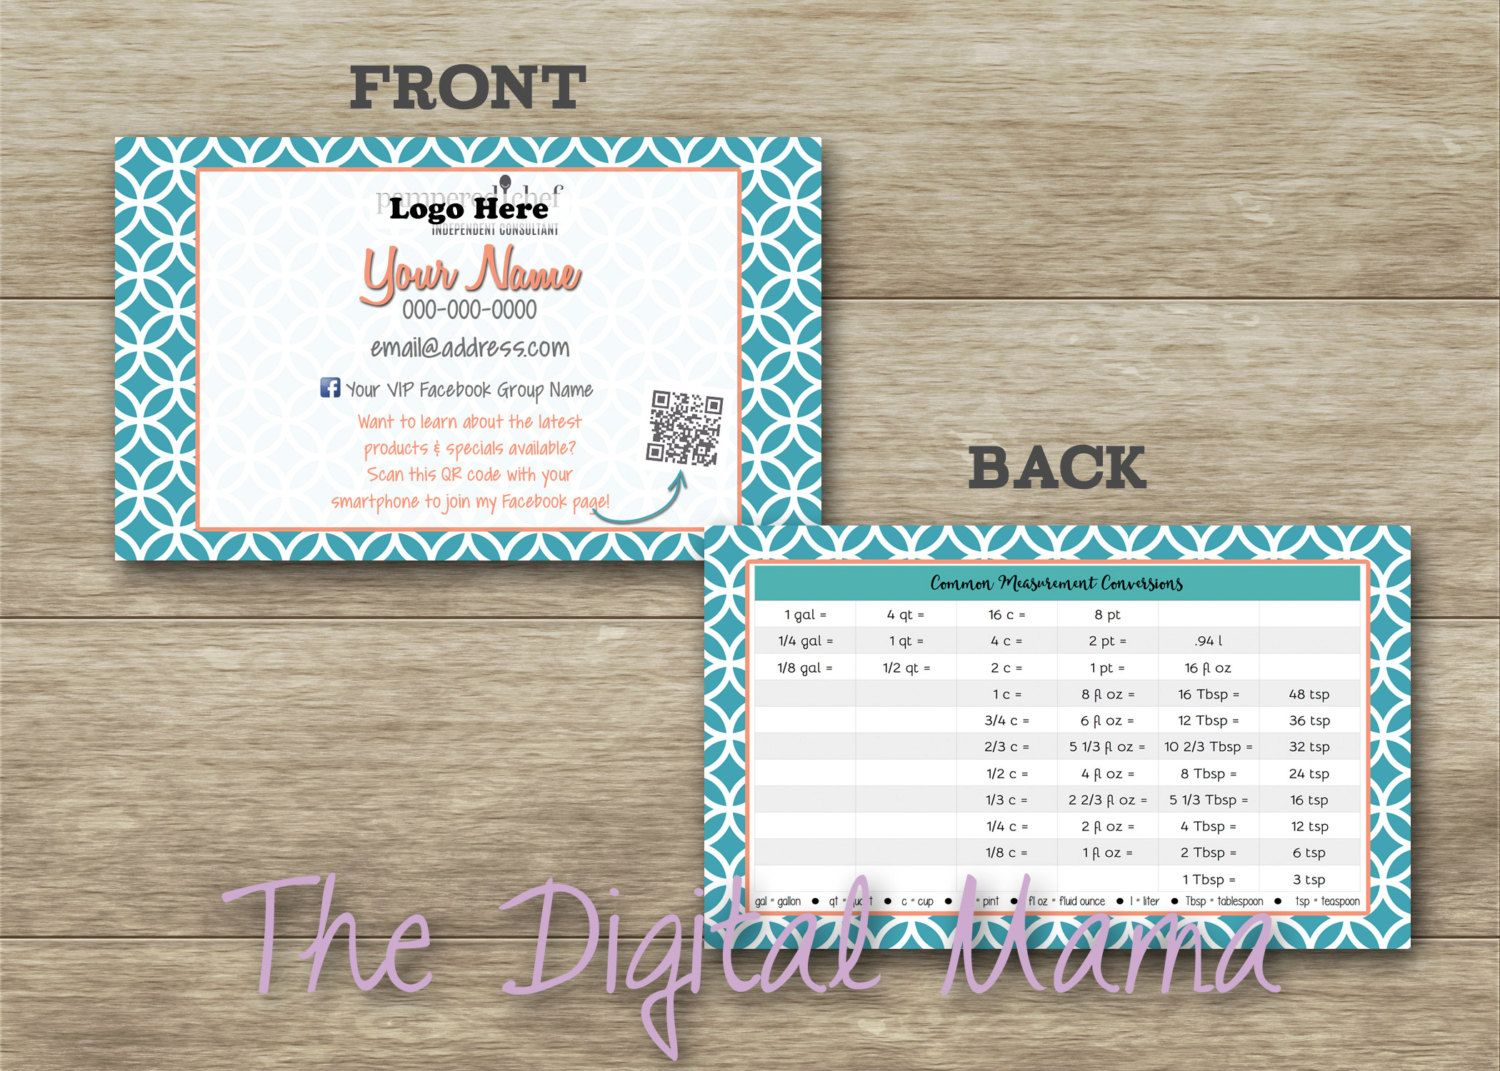 Pampered Chef Business Card Cooking Conversion Tara At Home Consultant Digital By Thedigitalmama On